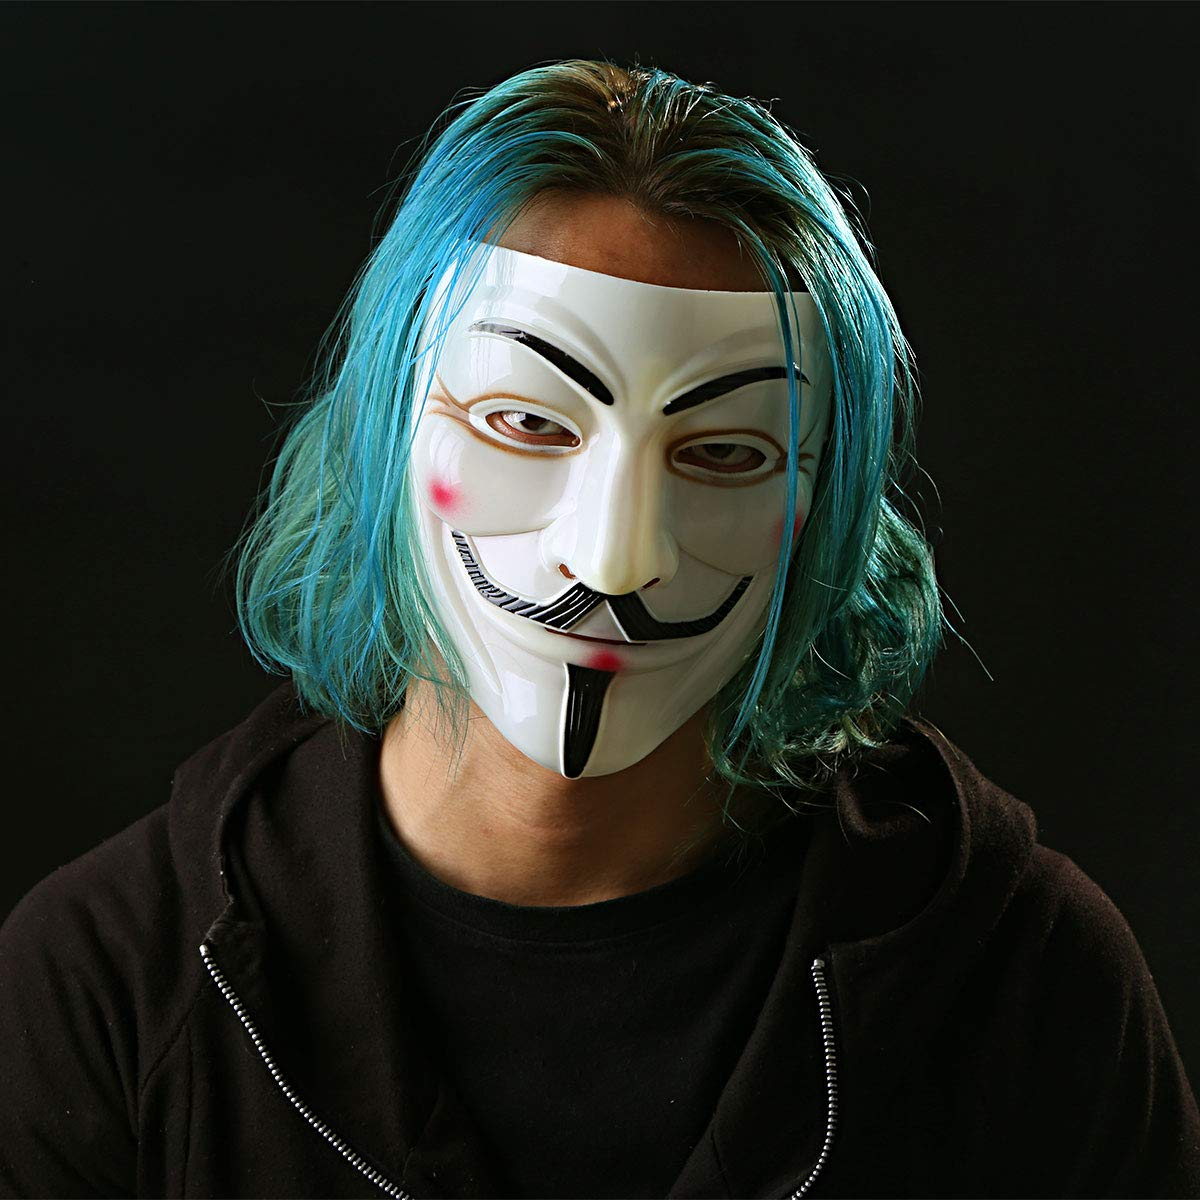 Alvivi Unisex Vendetta Maske Mask Guy Fawkes Anonymous Replika Demo